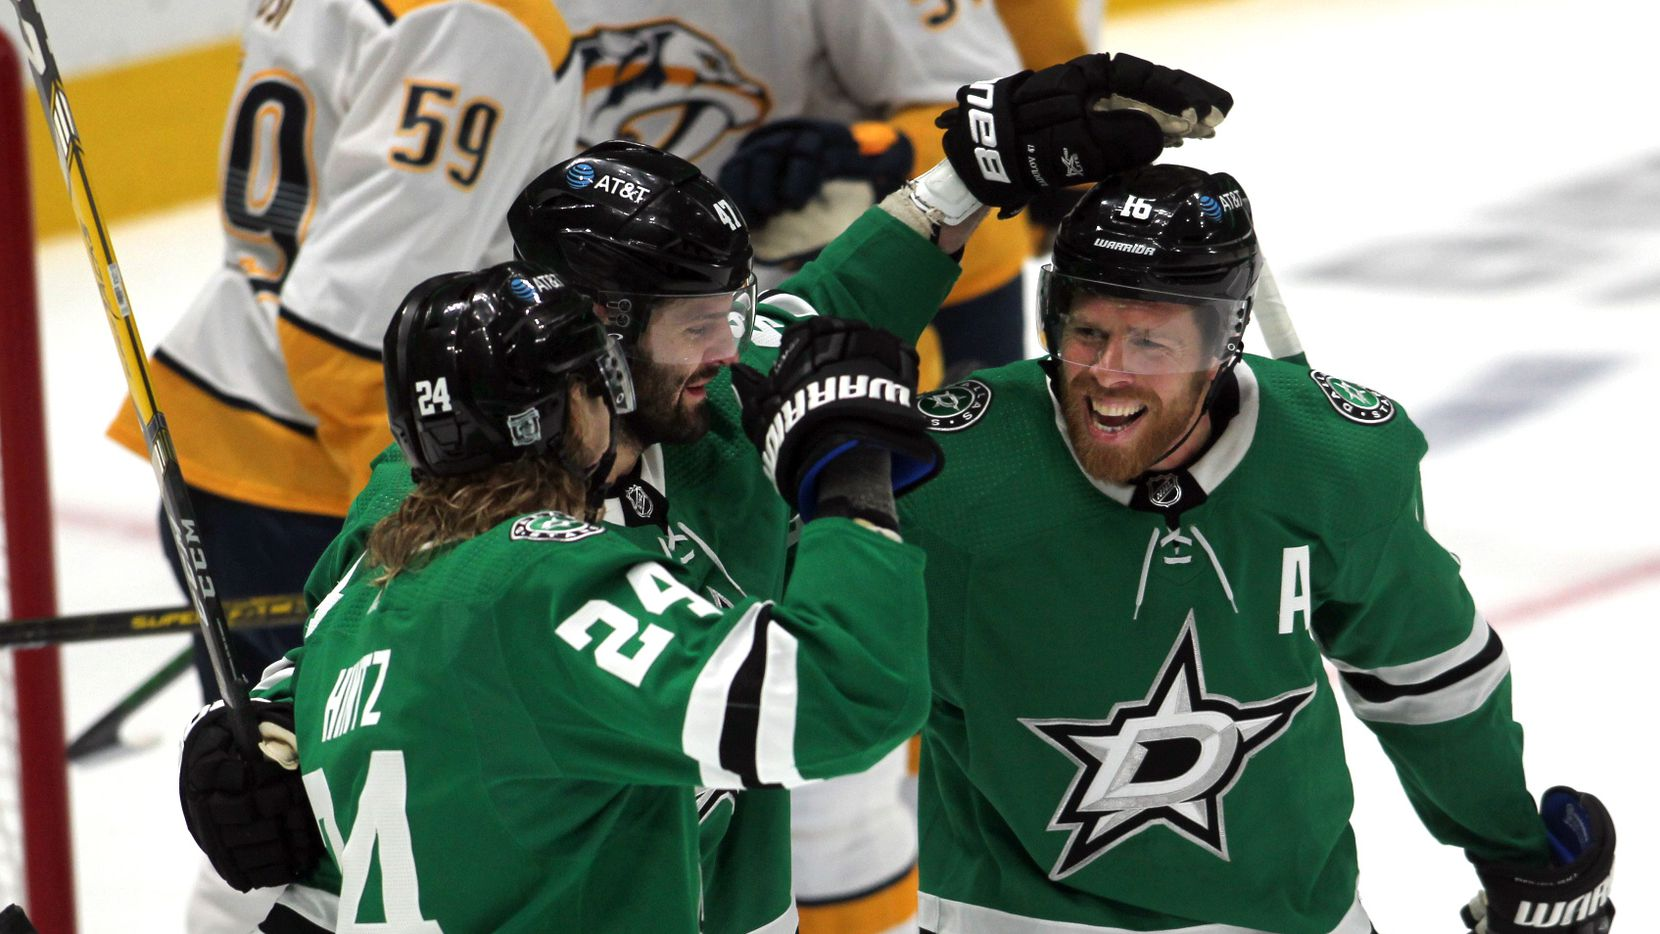 Dallas Stars forward Roope Hintz (24) ,left, set off a celebration with teammates Alexander Radulov (47), center, and Joe Pavelski (16) after Hintz scored on an assist from Pavelski during 2nd period action against the Nashville Predators. The two teams played their NHL game at the American Airlines Center in Dallas on January 24 , 2021.